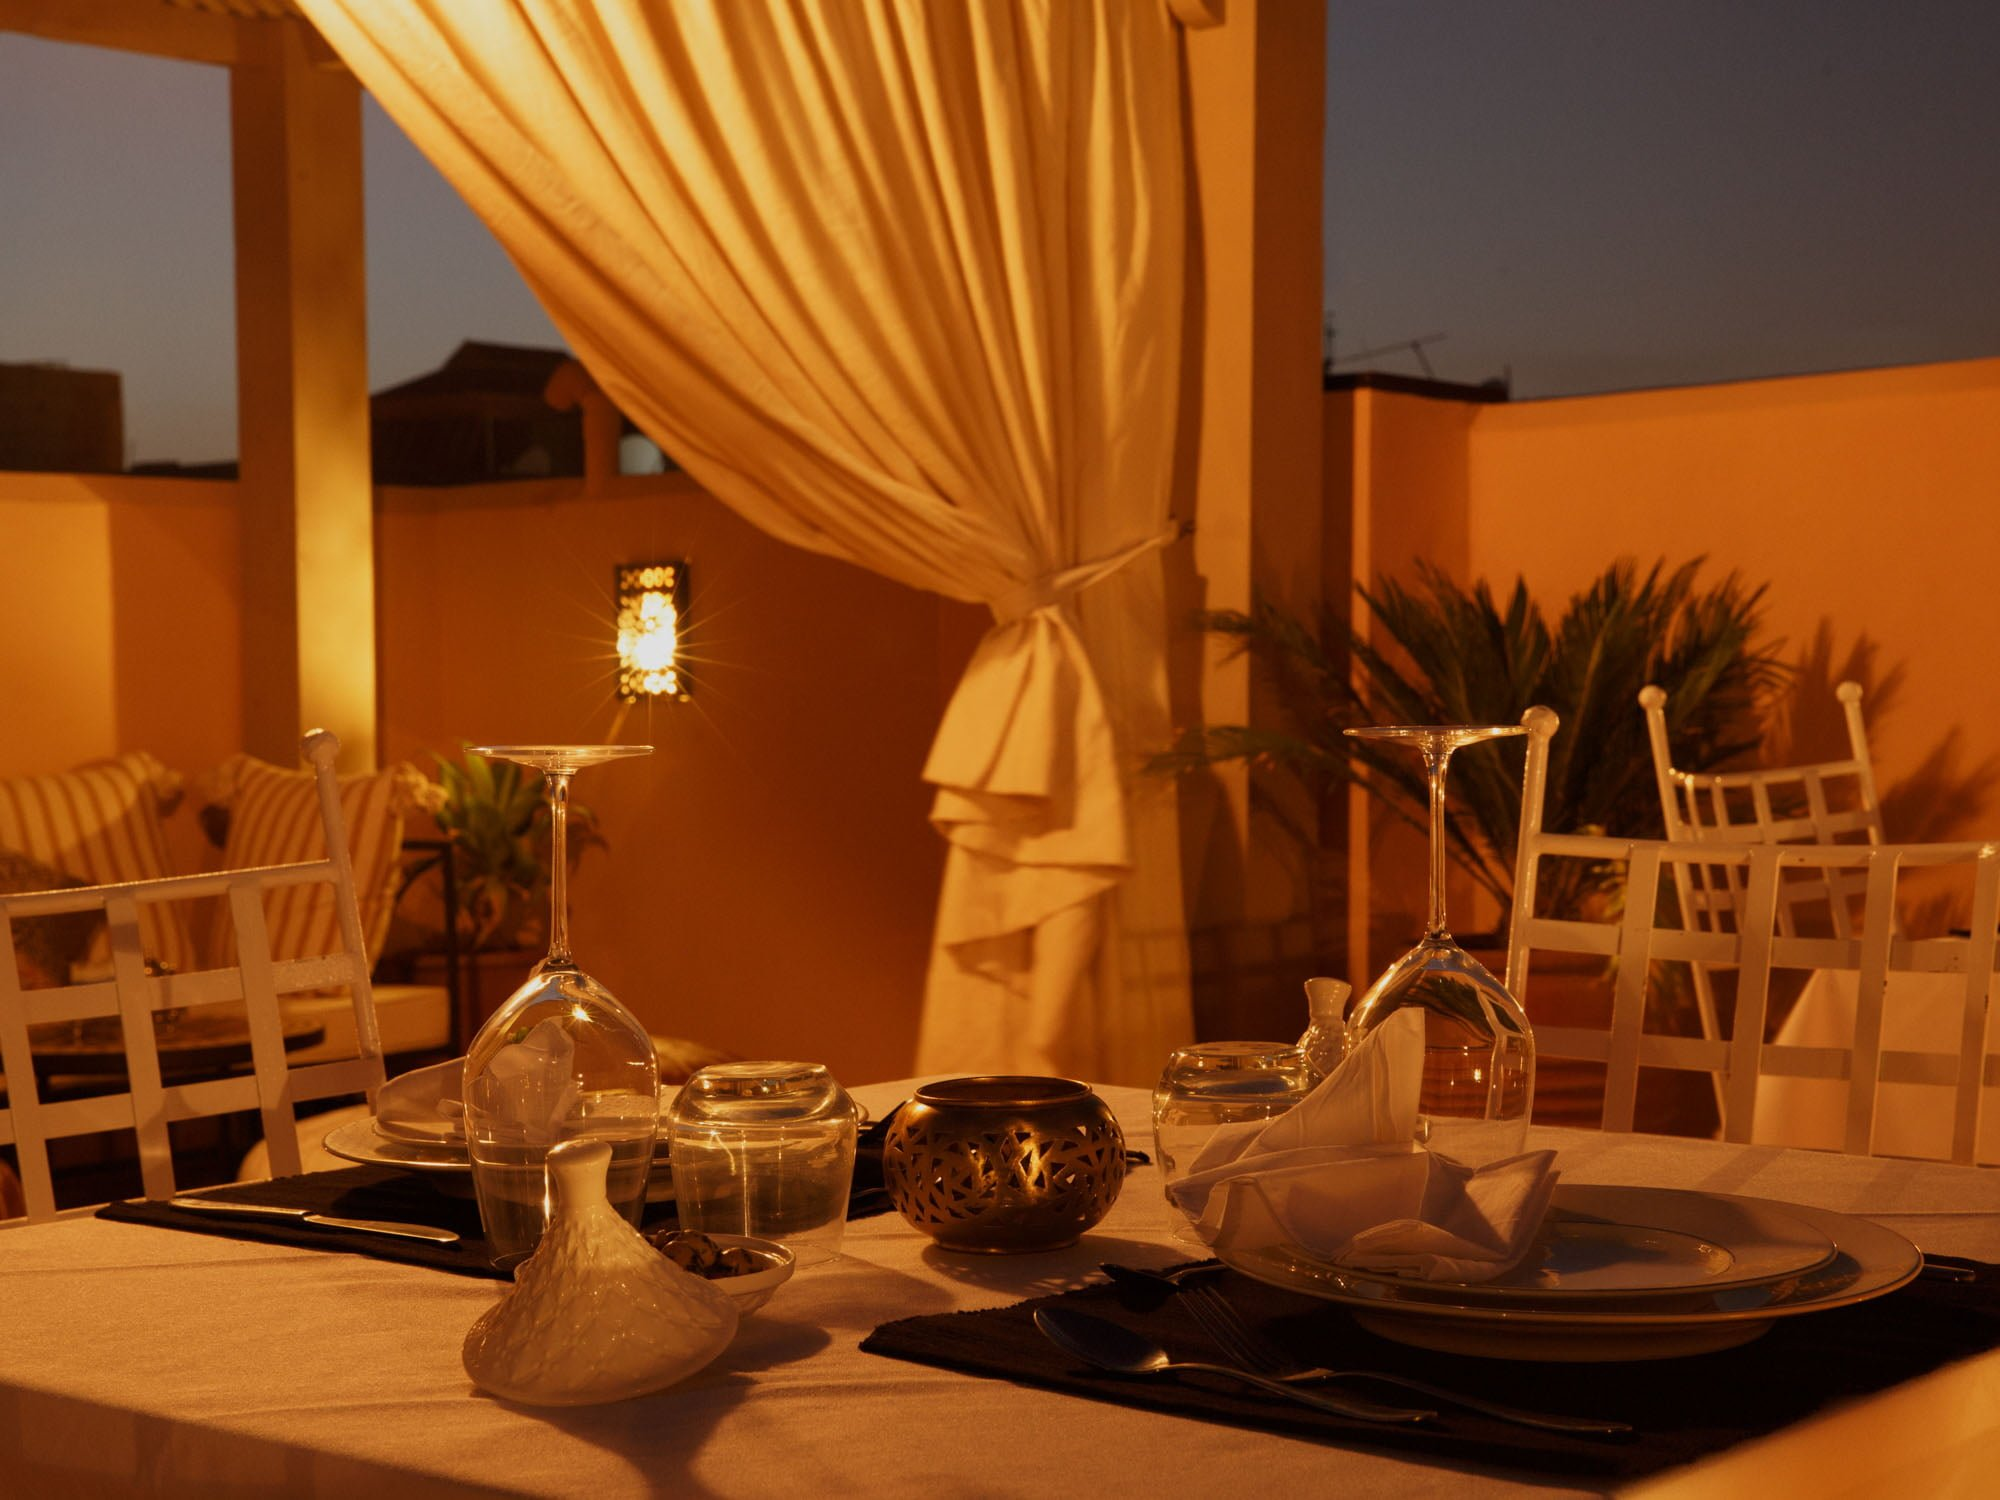 Laid Table at Riad Hotel Rooftop Garden with Wine Glasses, Plates, Napkins and Cutlery